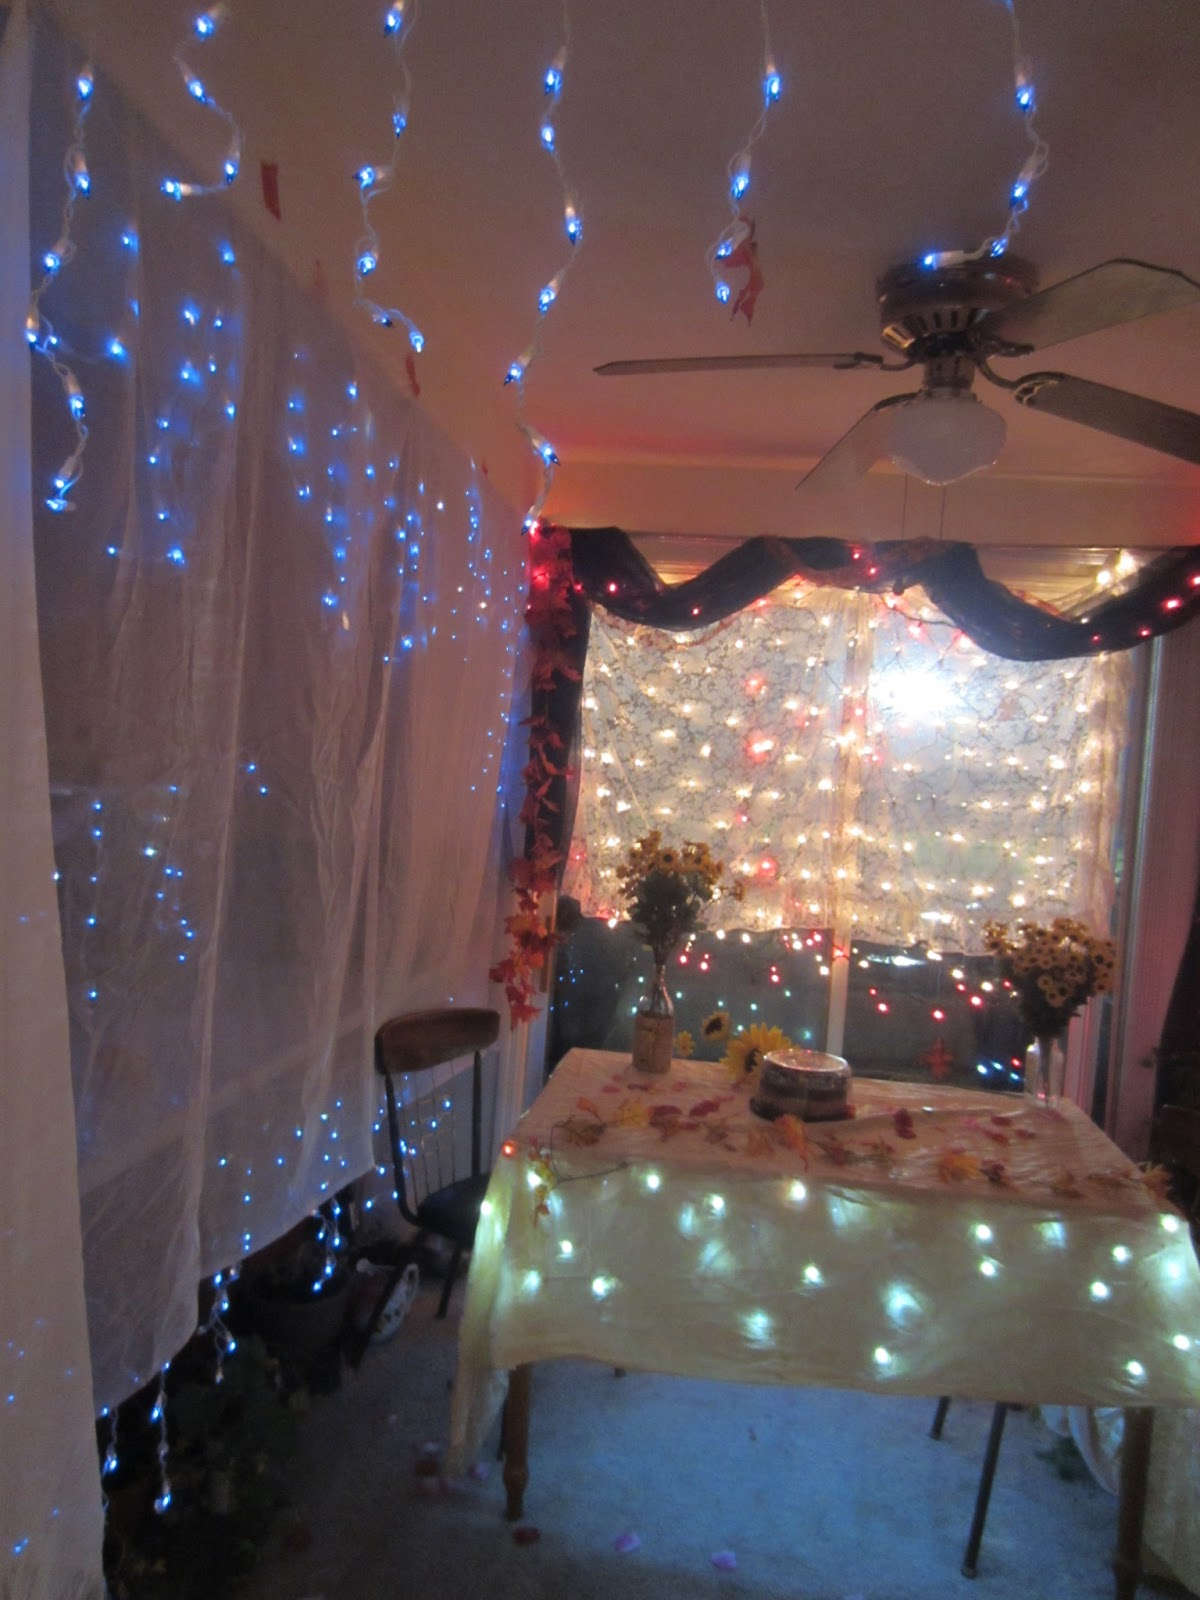 Romantic Decorations For Bedroom Budget: Violet's Silver Lining: Romantic Anniversary Ideas